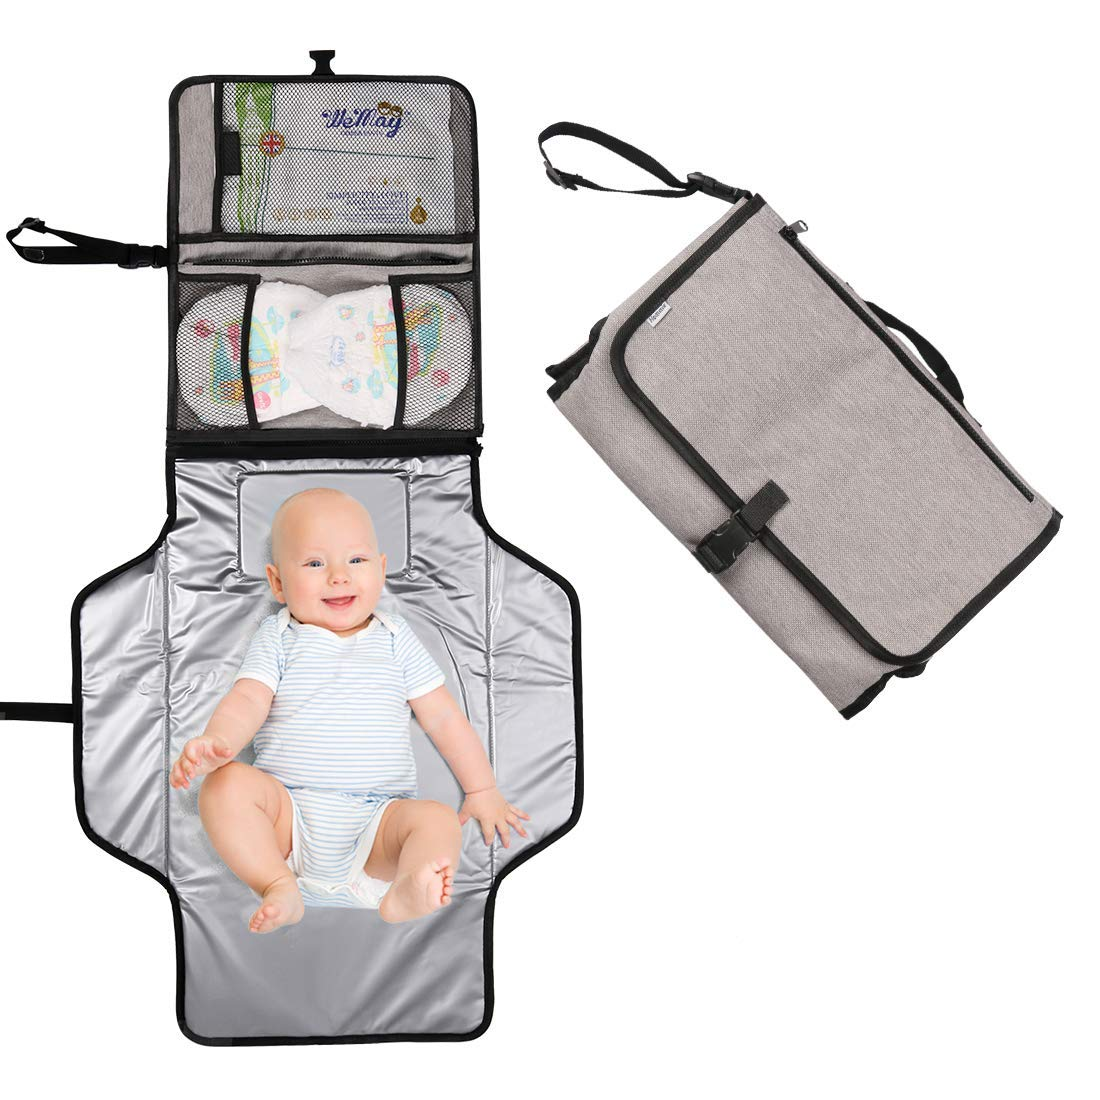 Hommie Baby Portable Nappy Changing Mat, Waterproof Foldable Infant Urinal Pad Baby Changing Kit with with Head Cushion Net Pockets for Home Travel